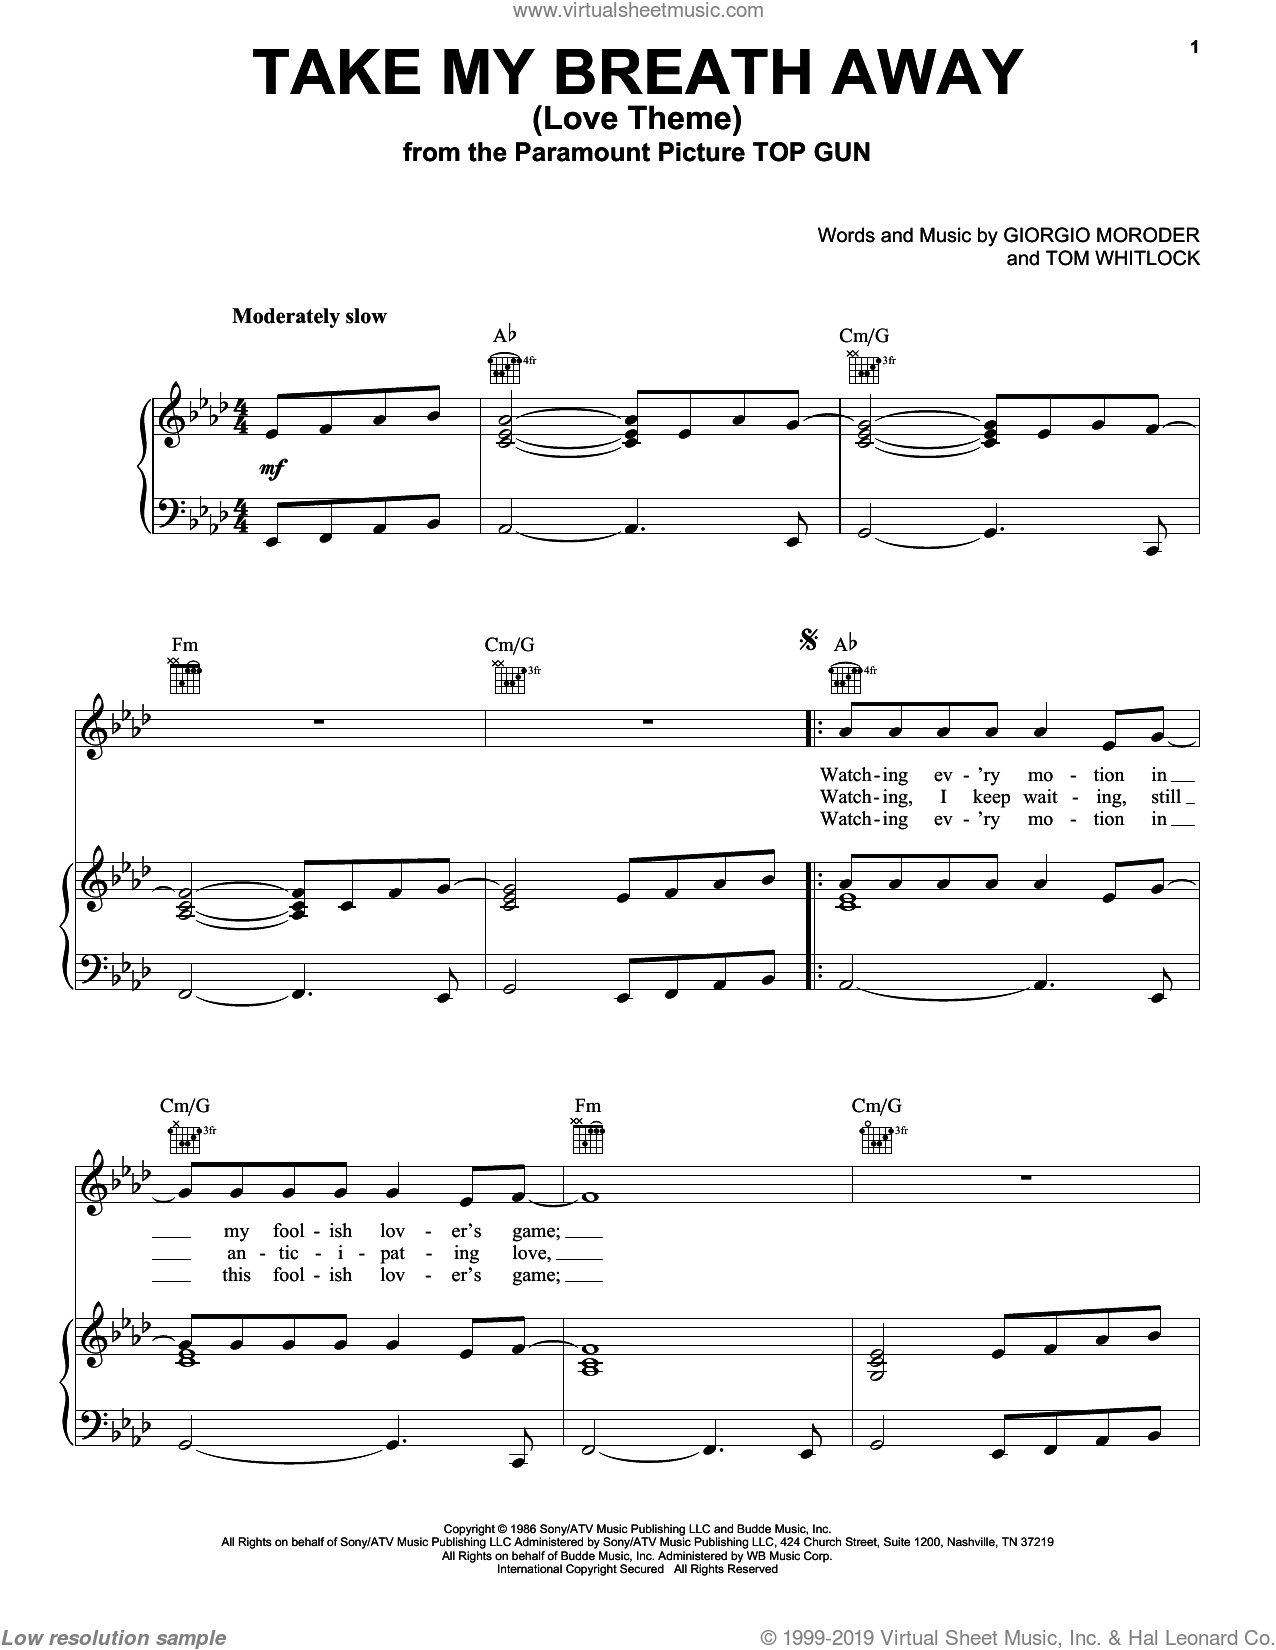 Take My Breath Away (Love Theme) sheet music for voice, piano or guitar by Tom Whitlock